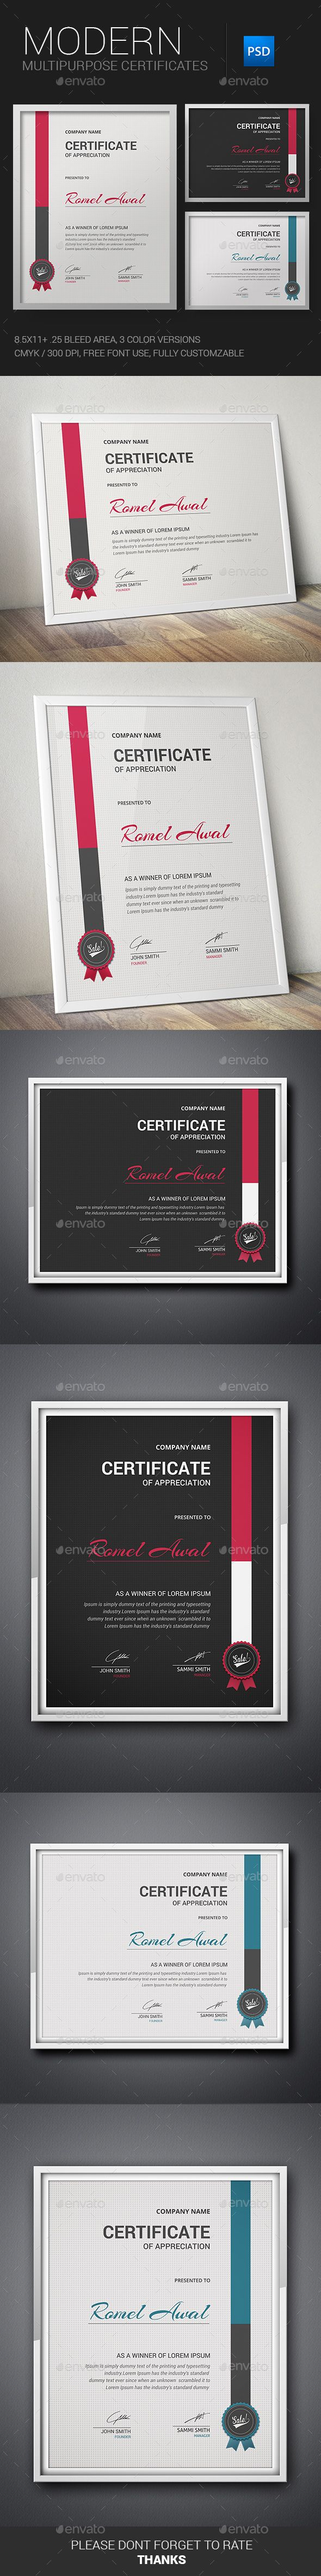 #Certificate - #Certificates #Stationery Download here: https://graphicriver.net/item/certificate/11380454?ref=alena994